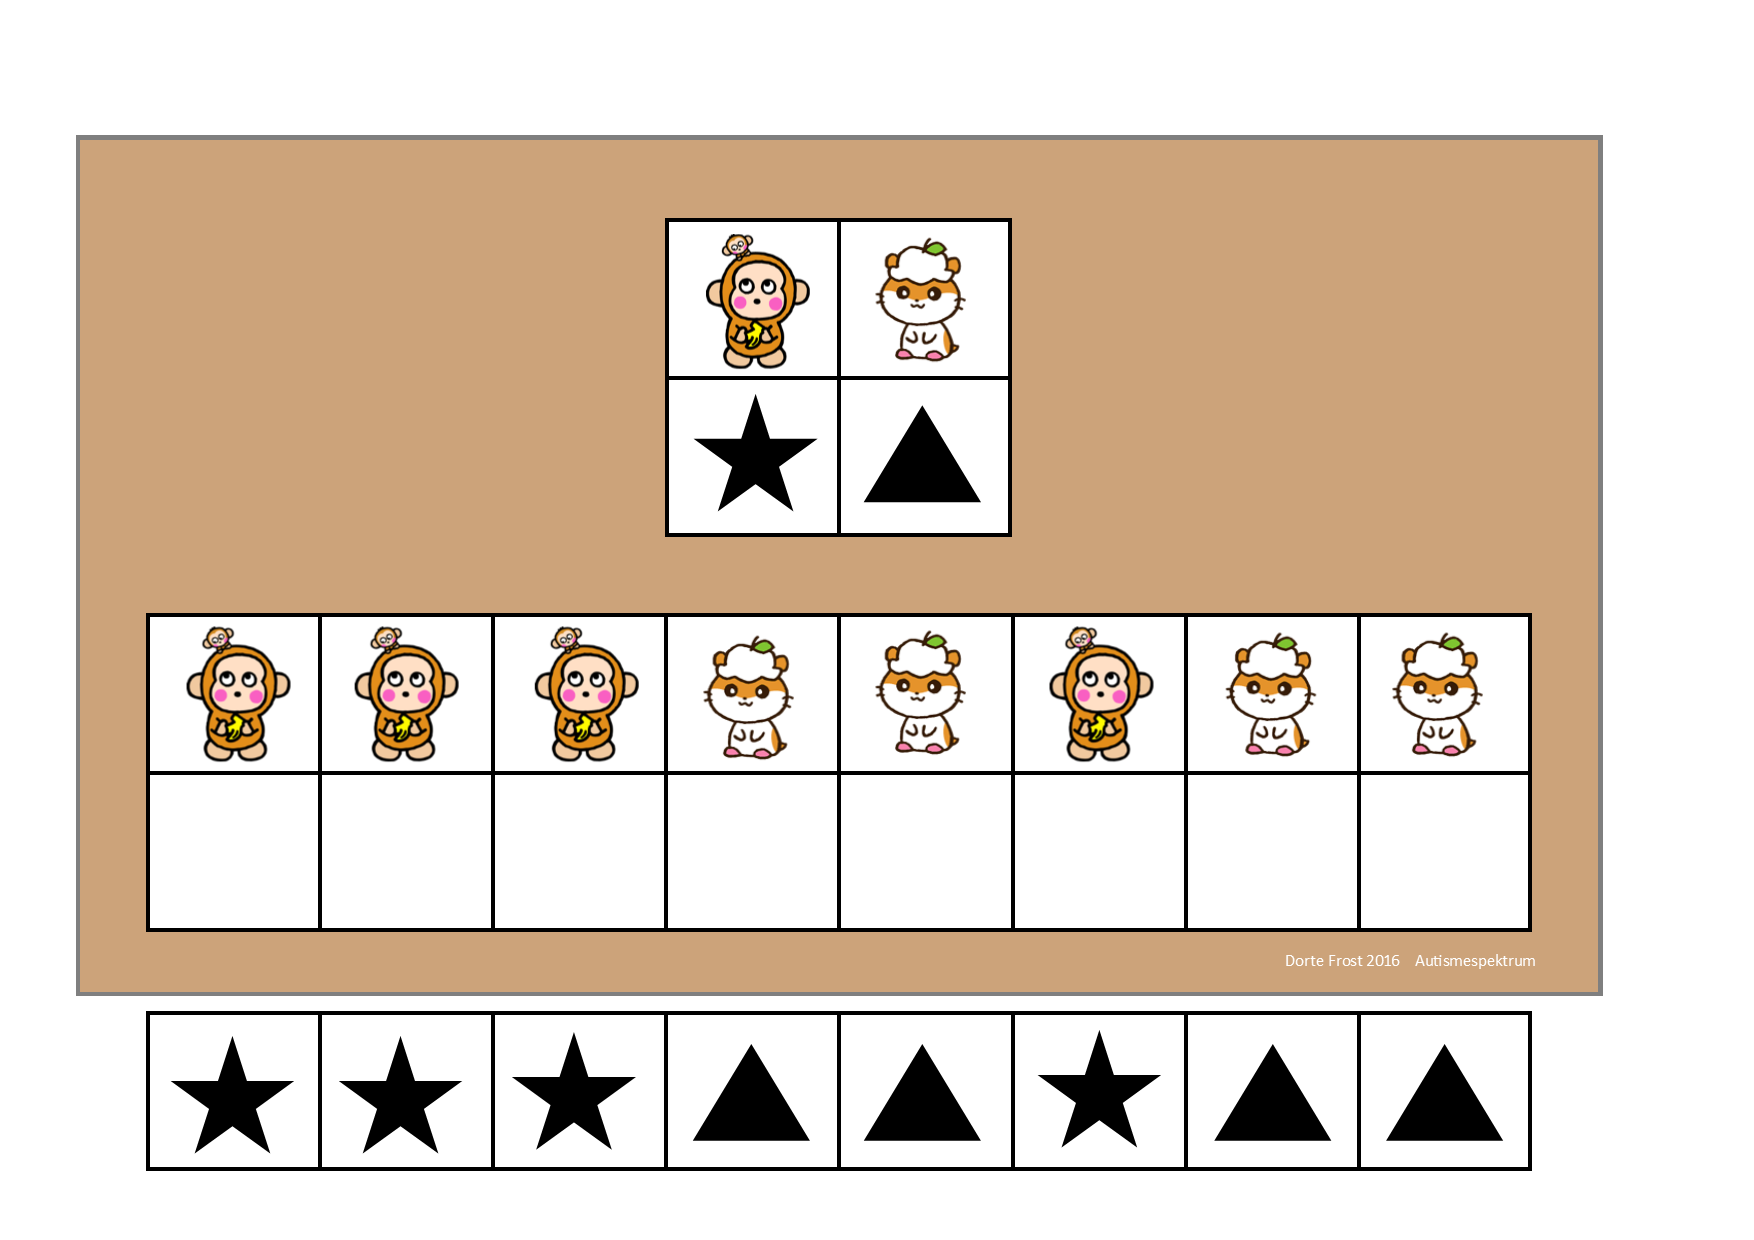 Board And Tiles For The Sanio Visual Perception Game By